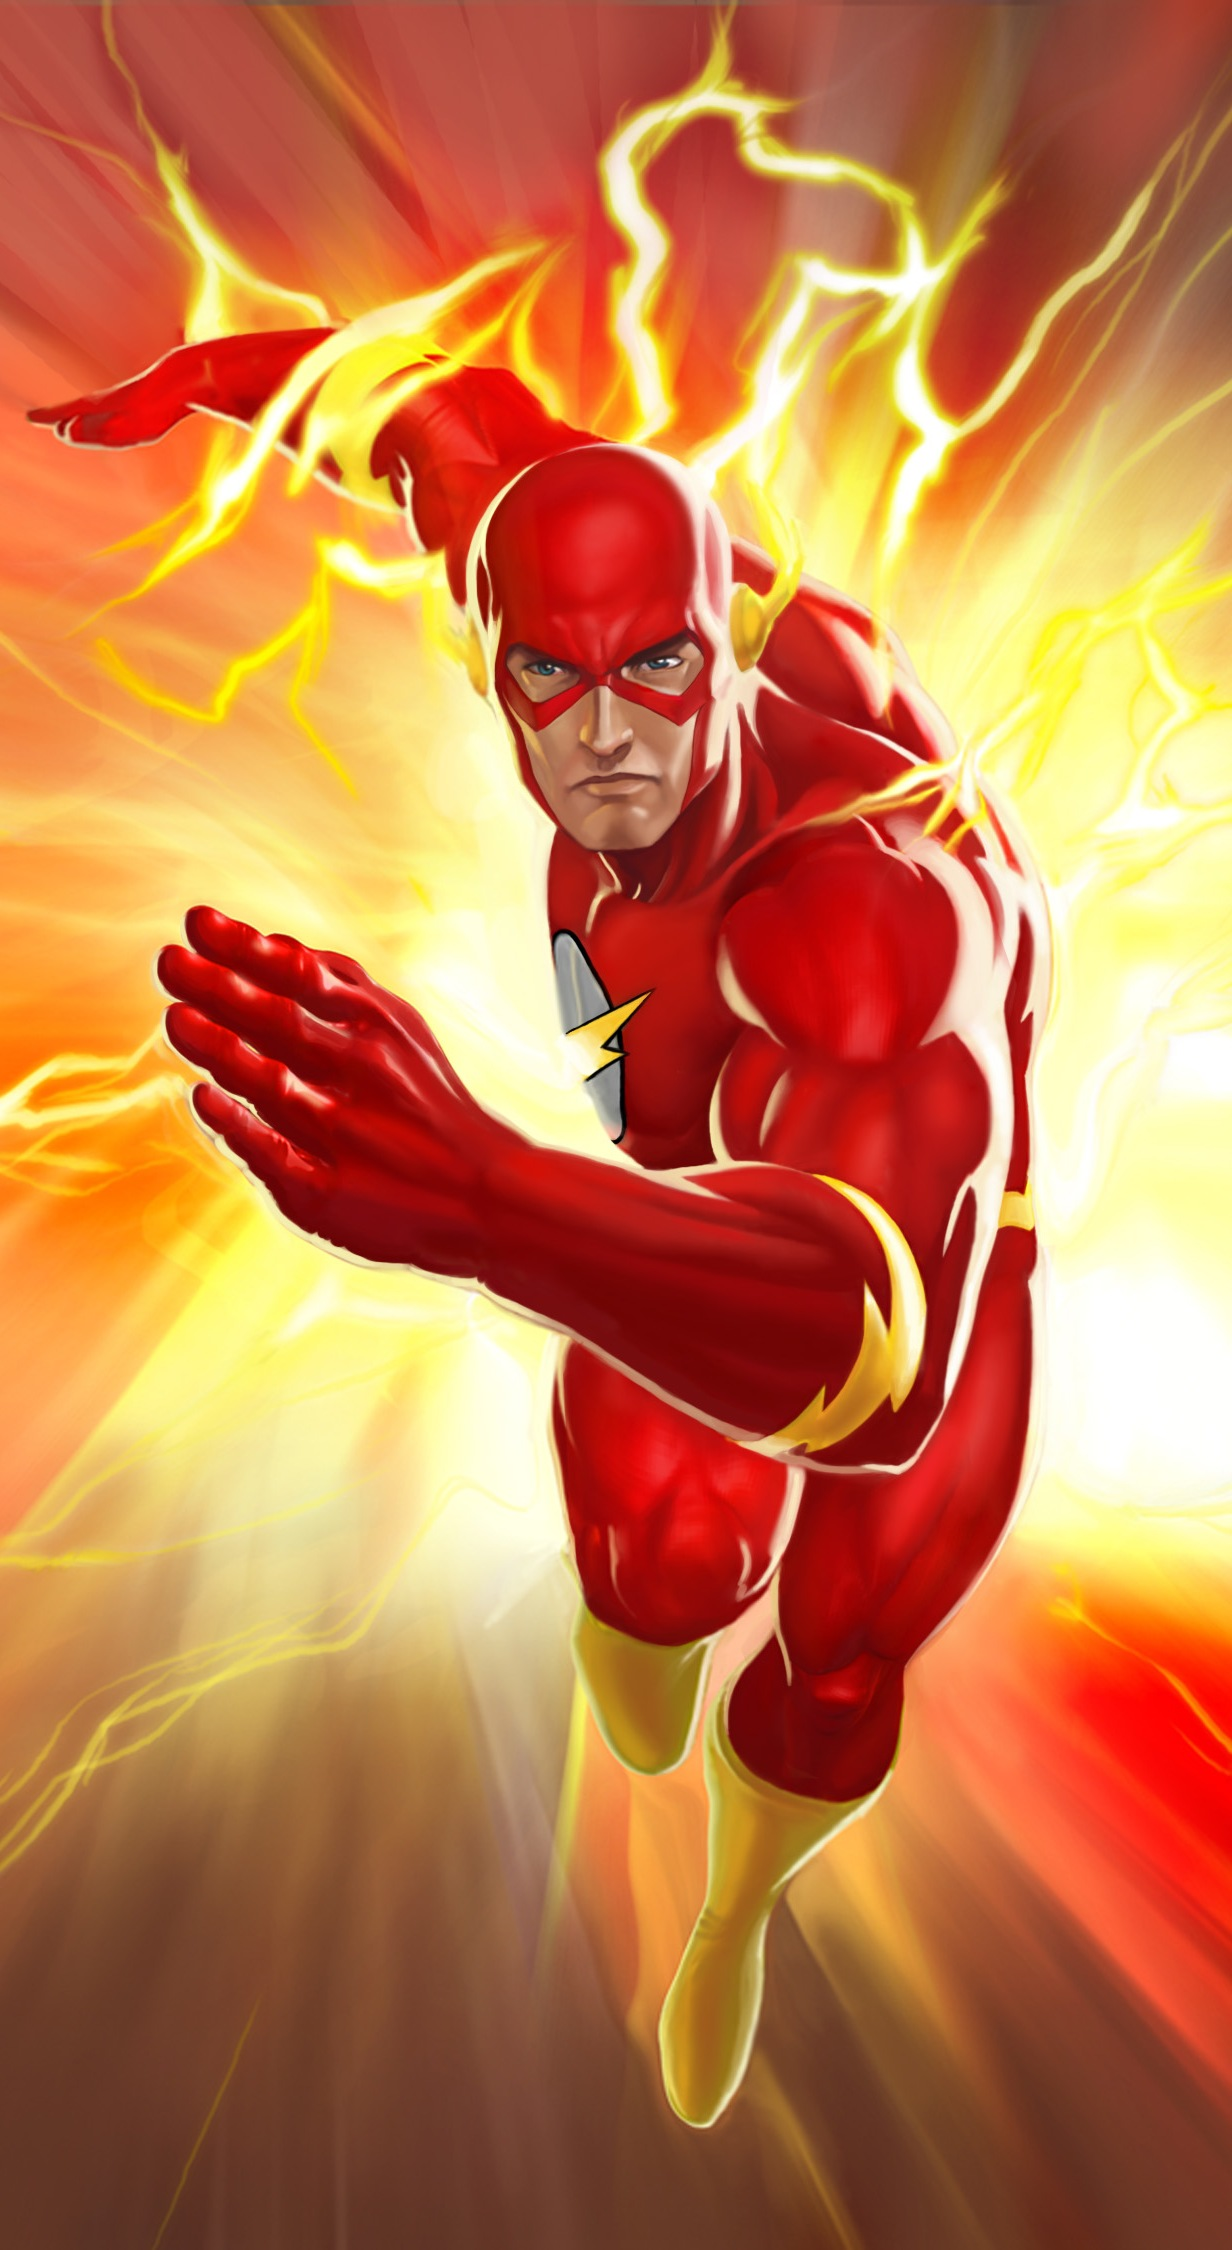 5 Reasons Why THE FLASH Needs His Own Cartoon Unleash